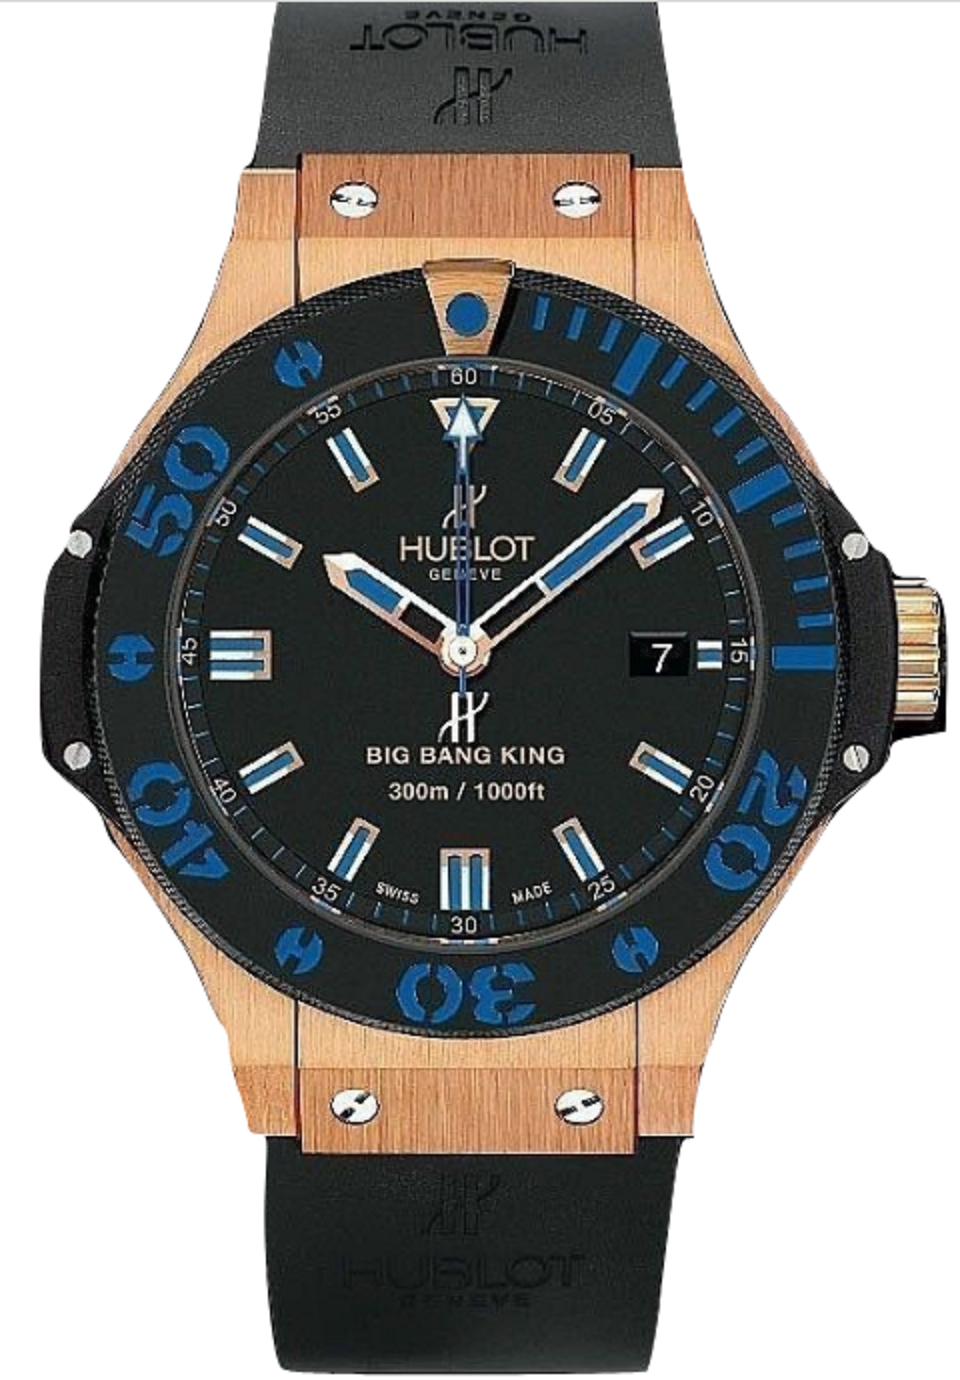 Hublot Big Bang King 44mm in Rose Gold with Ceramic Bezel